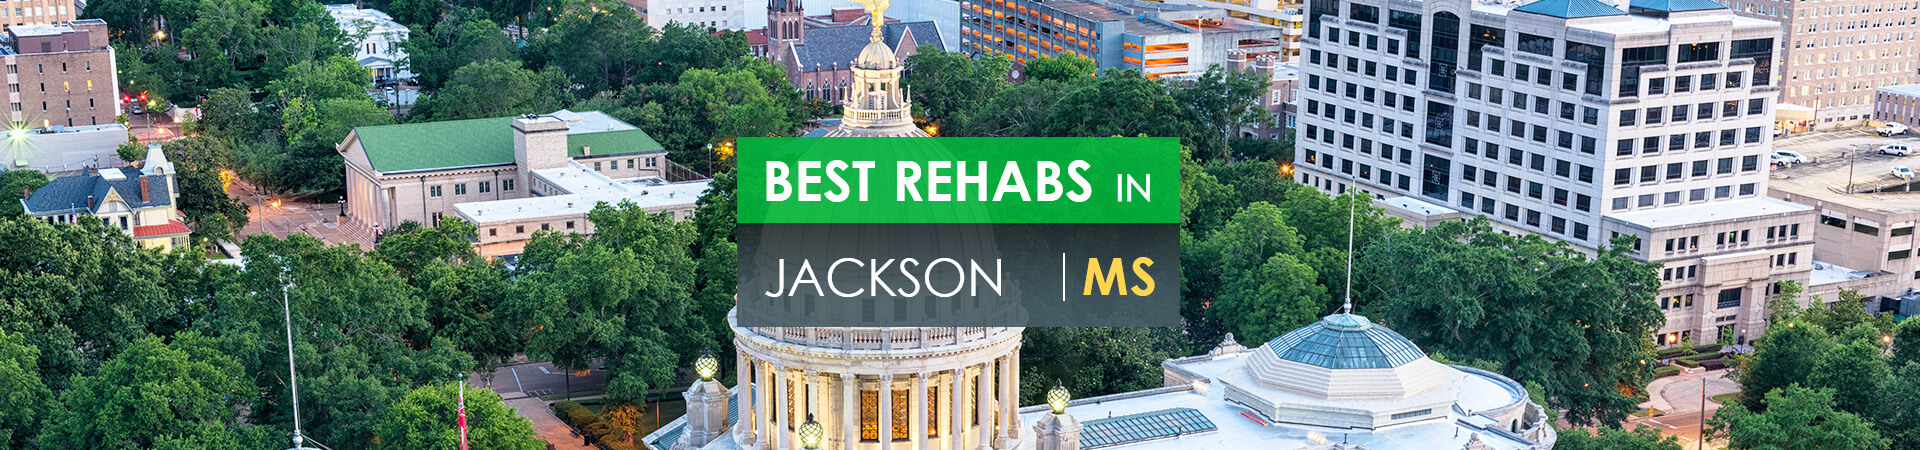 Best rehabs in Jackson, MS